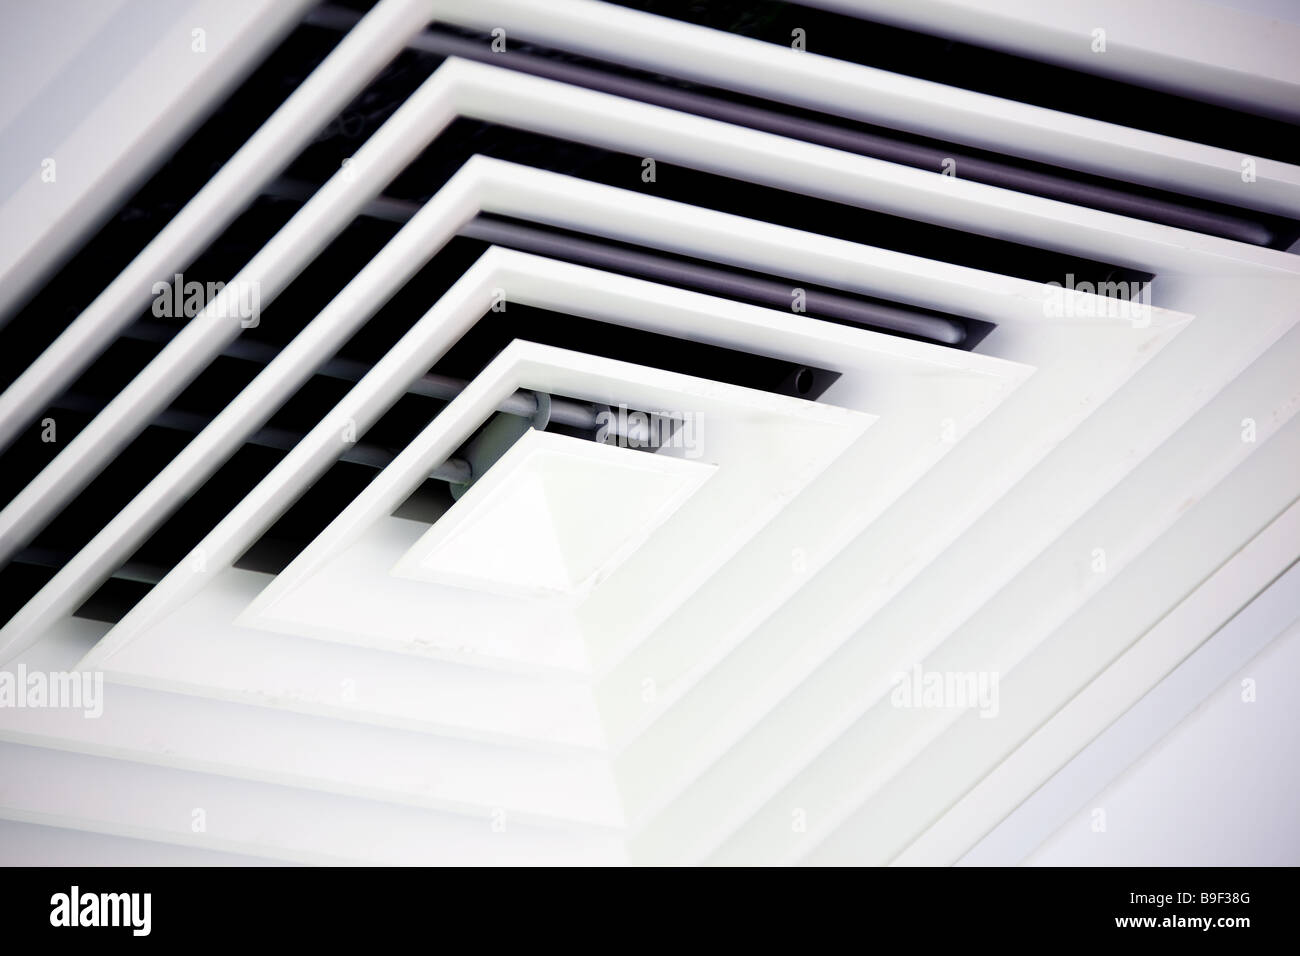 Air duct ventilation shaft on shop ceiling - Stock Image